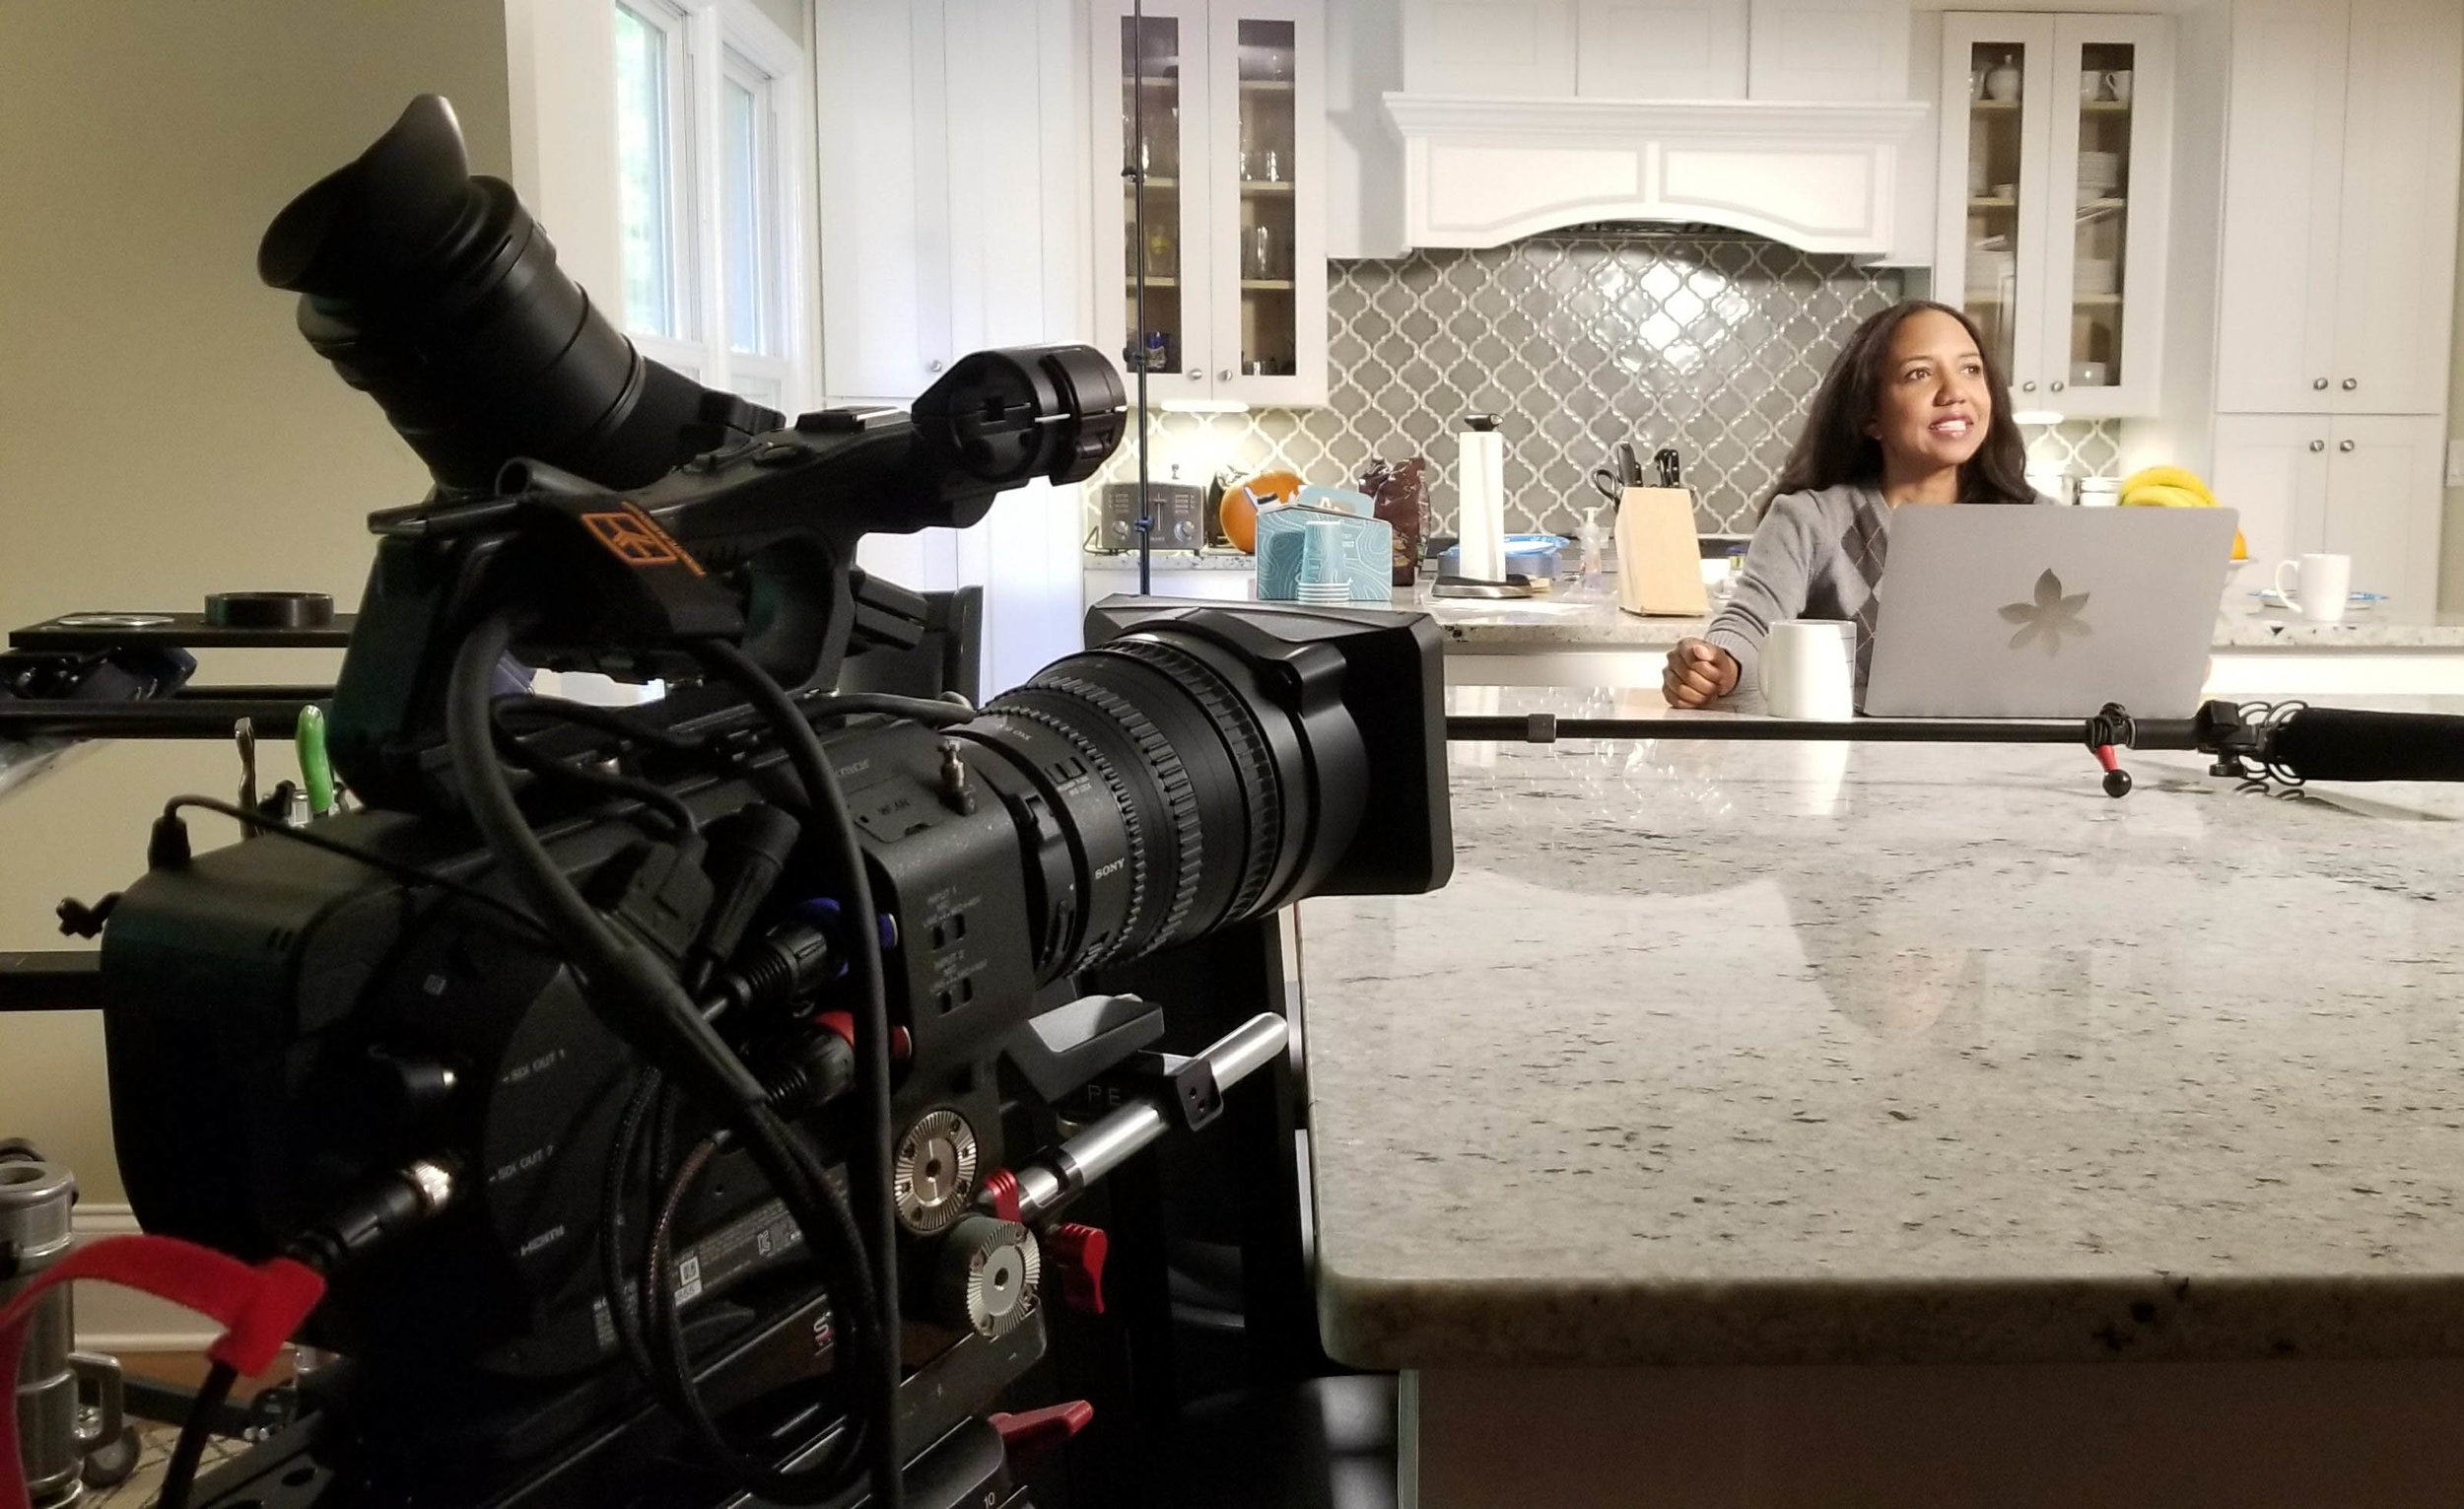 FS7 in position for a scene in the kitchen.